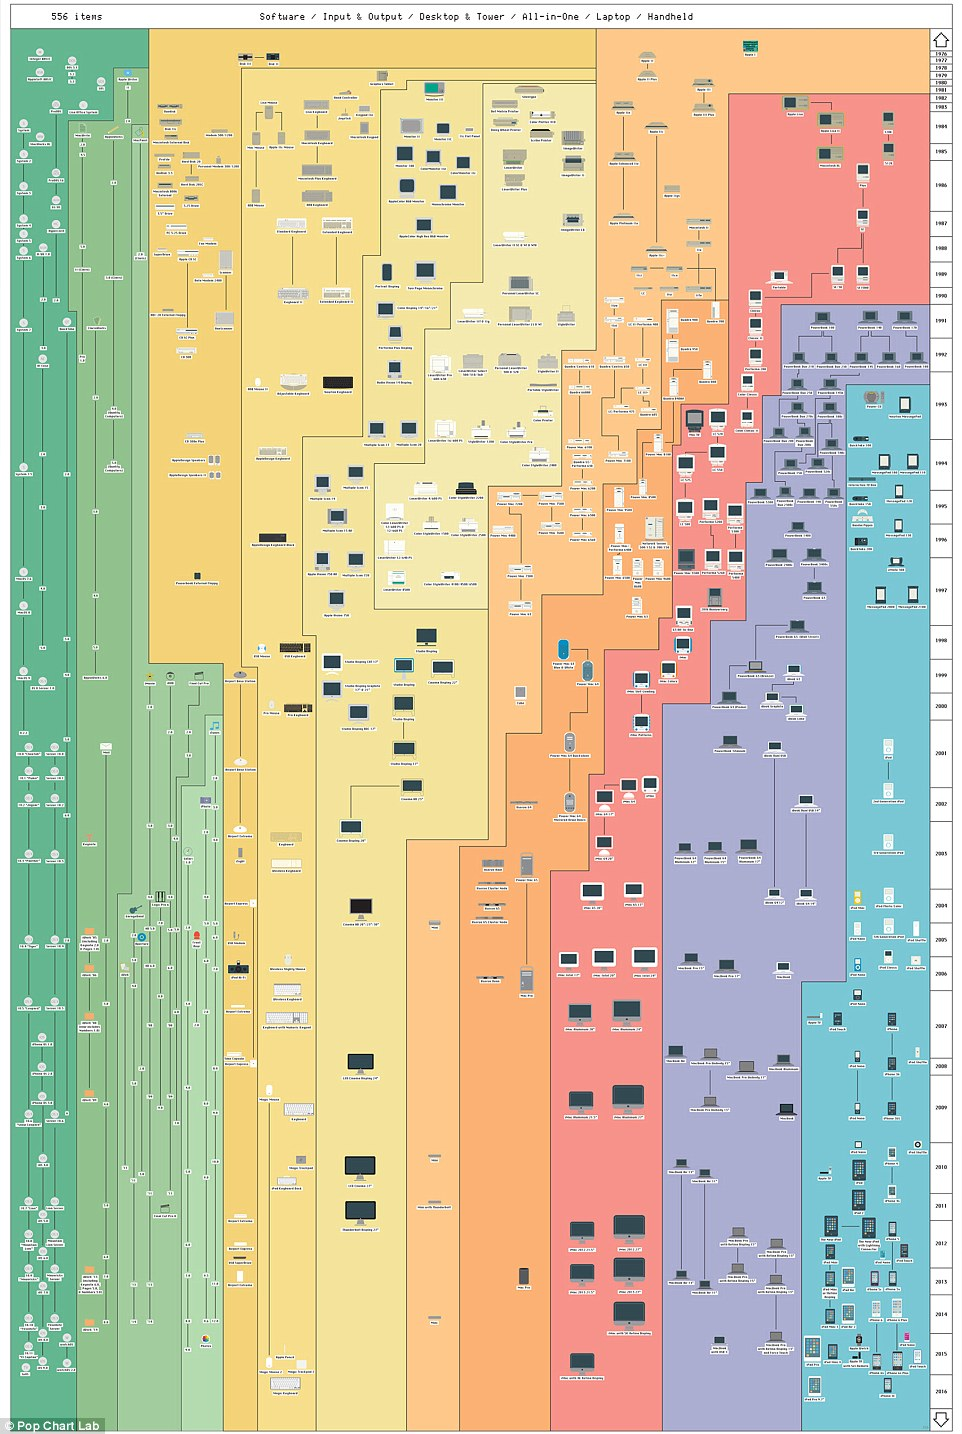 Infographic documenting all Apple products throughout history